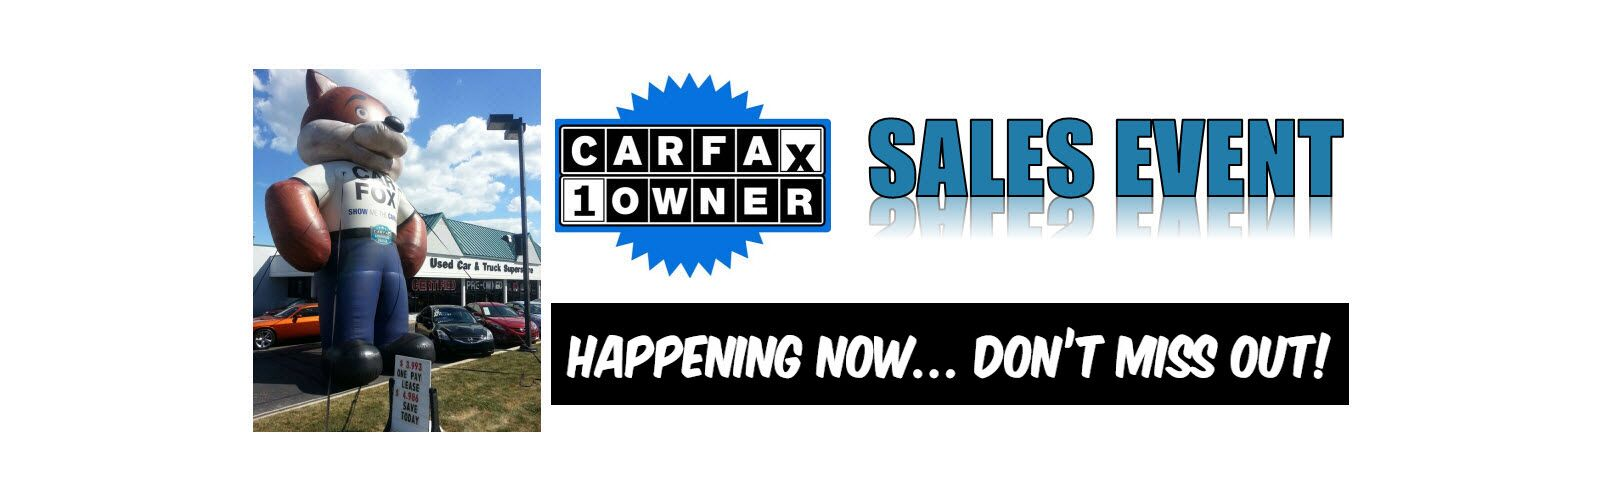 Carfax sales event